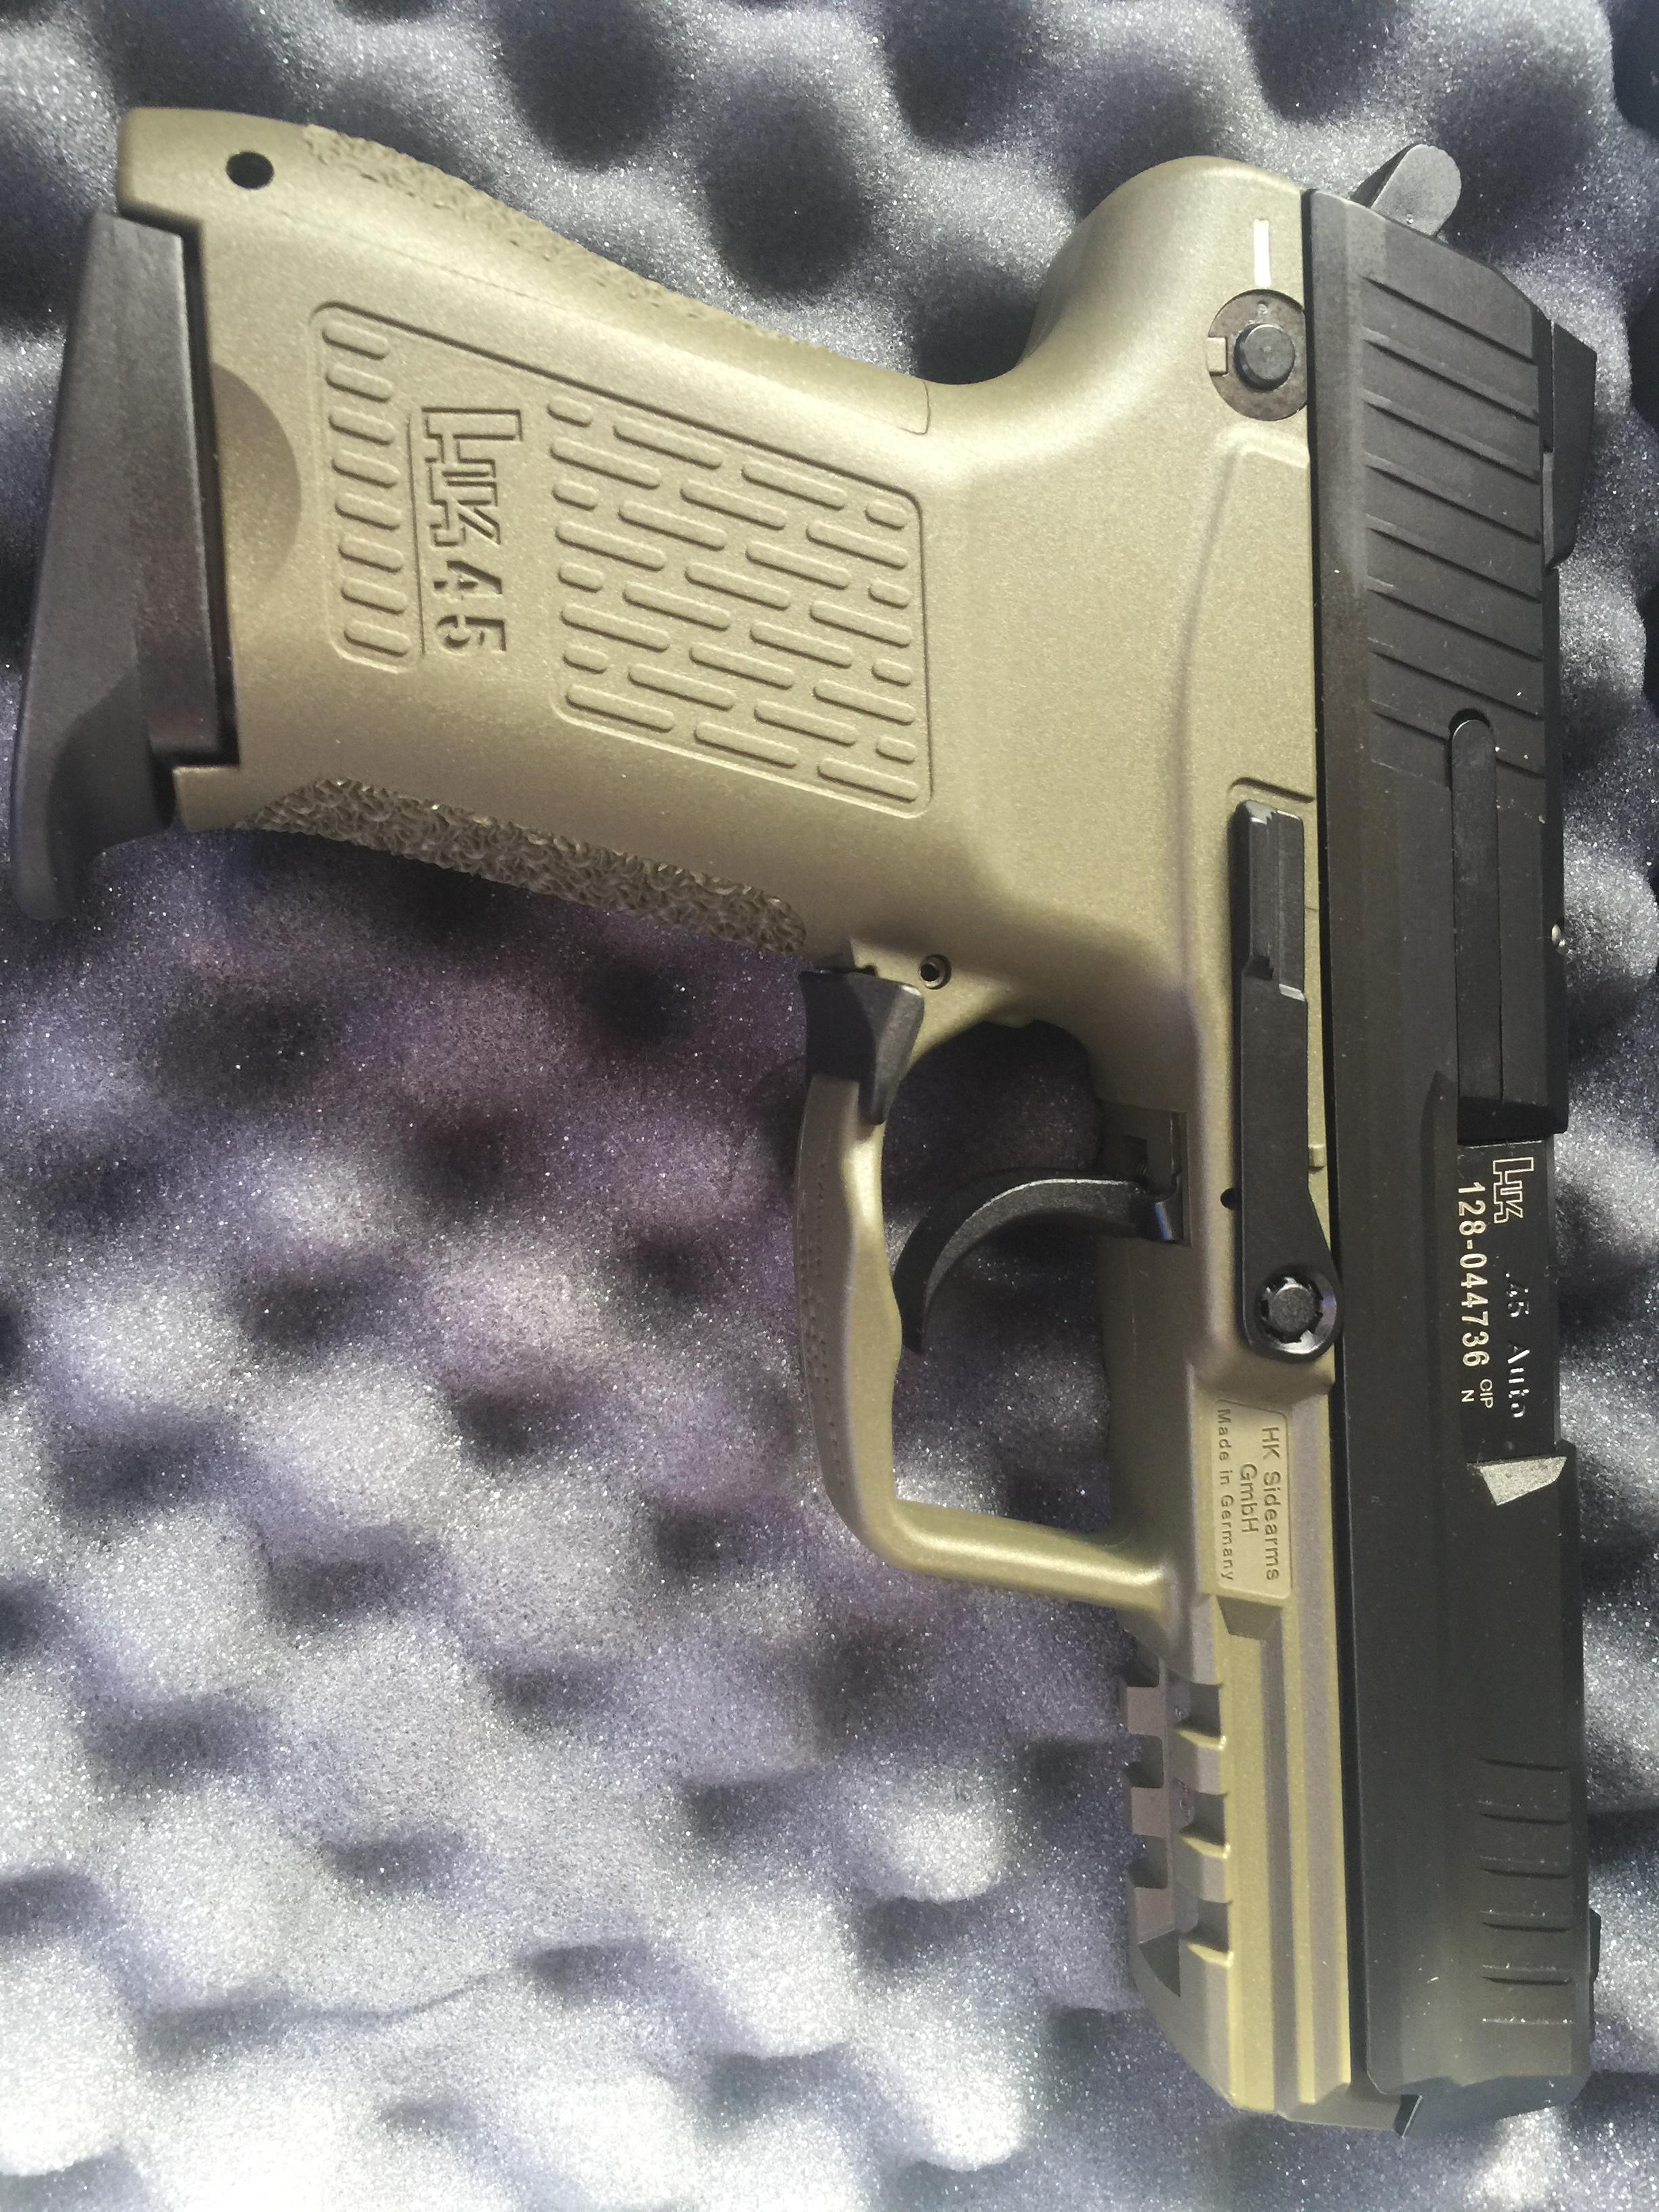 HK45c OD German born....-423b48e5-8ab7-4d9a-bcdf-e51cc6338feb_1583622281216.jpeg